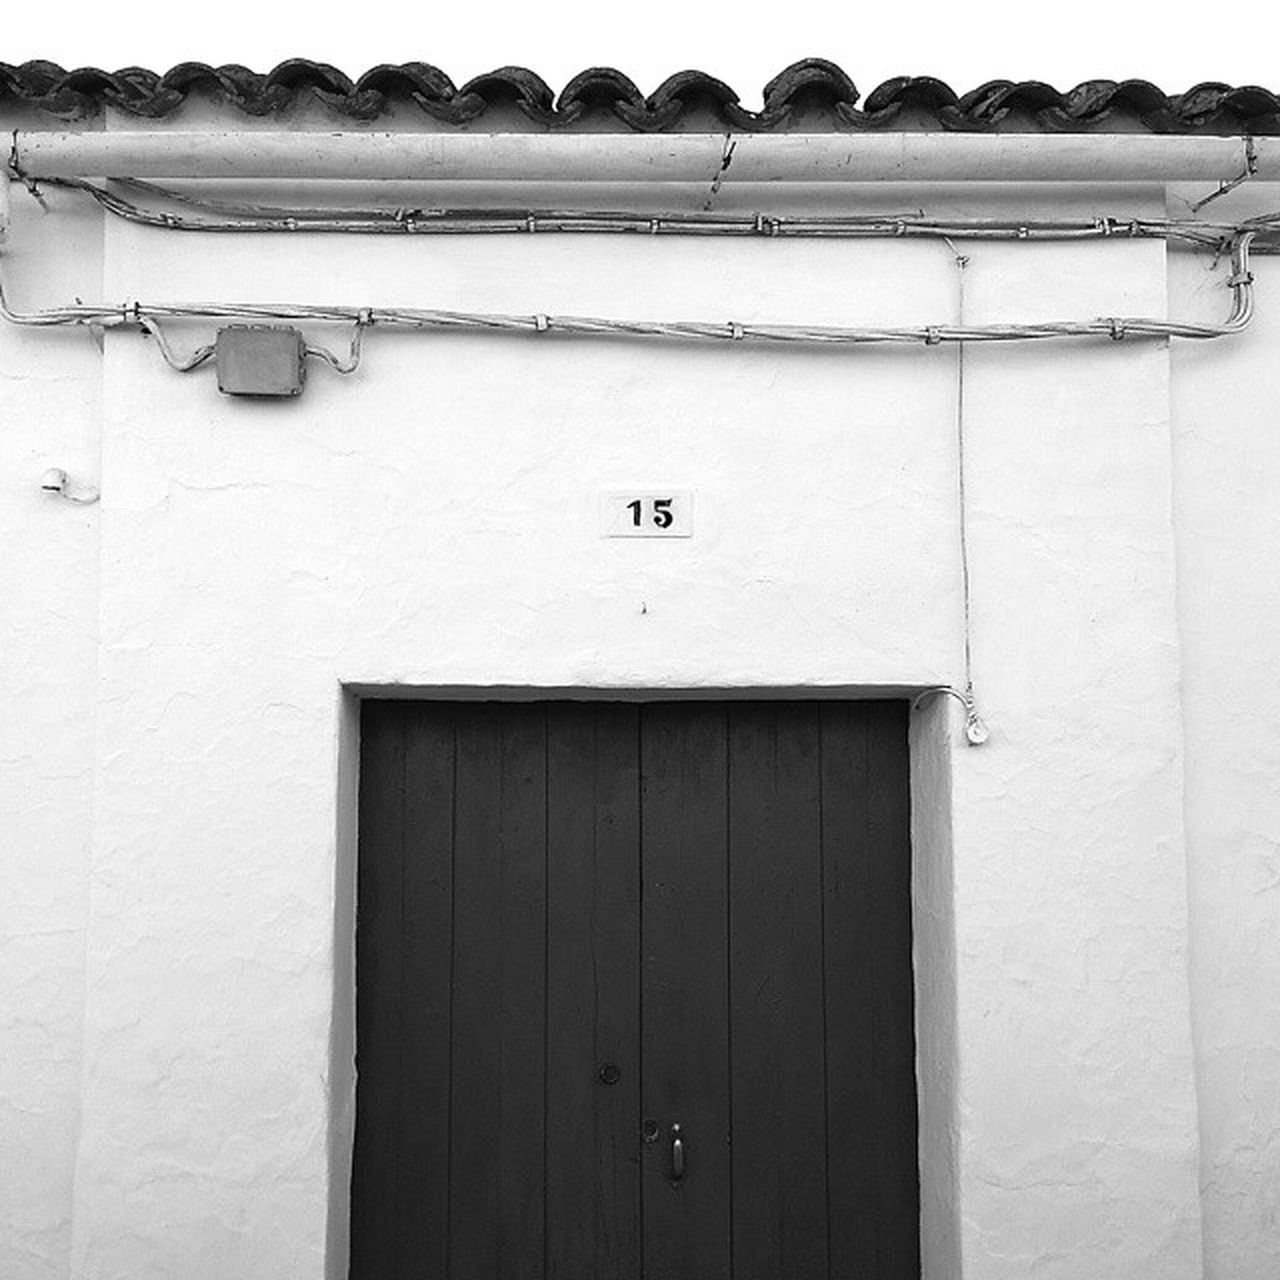 built structure, architecture, no people, building exterior, door, outdoors, day, close-up